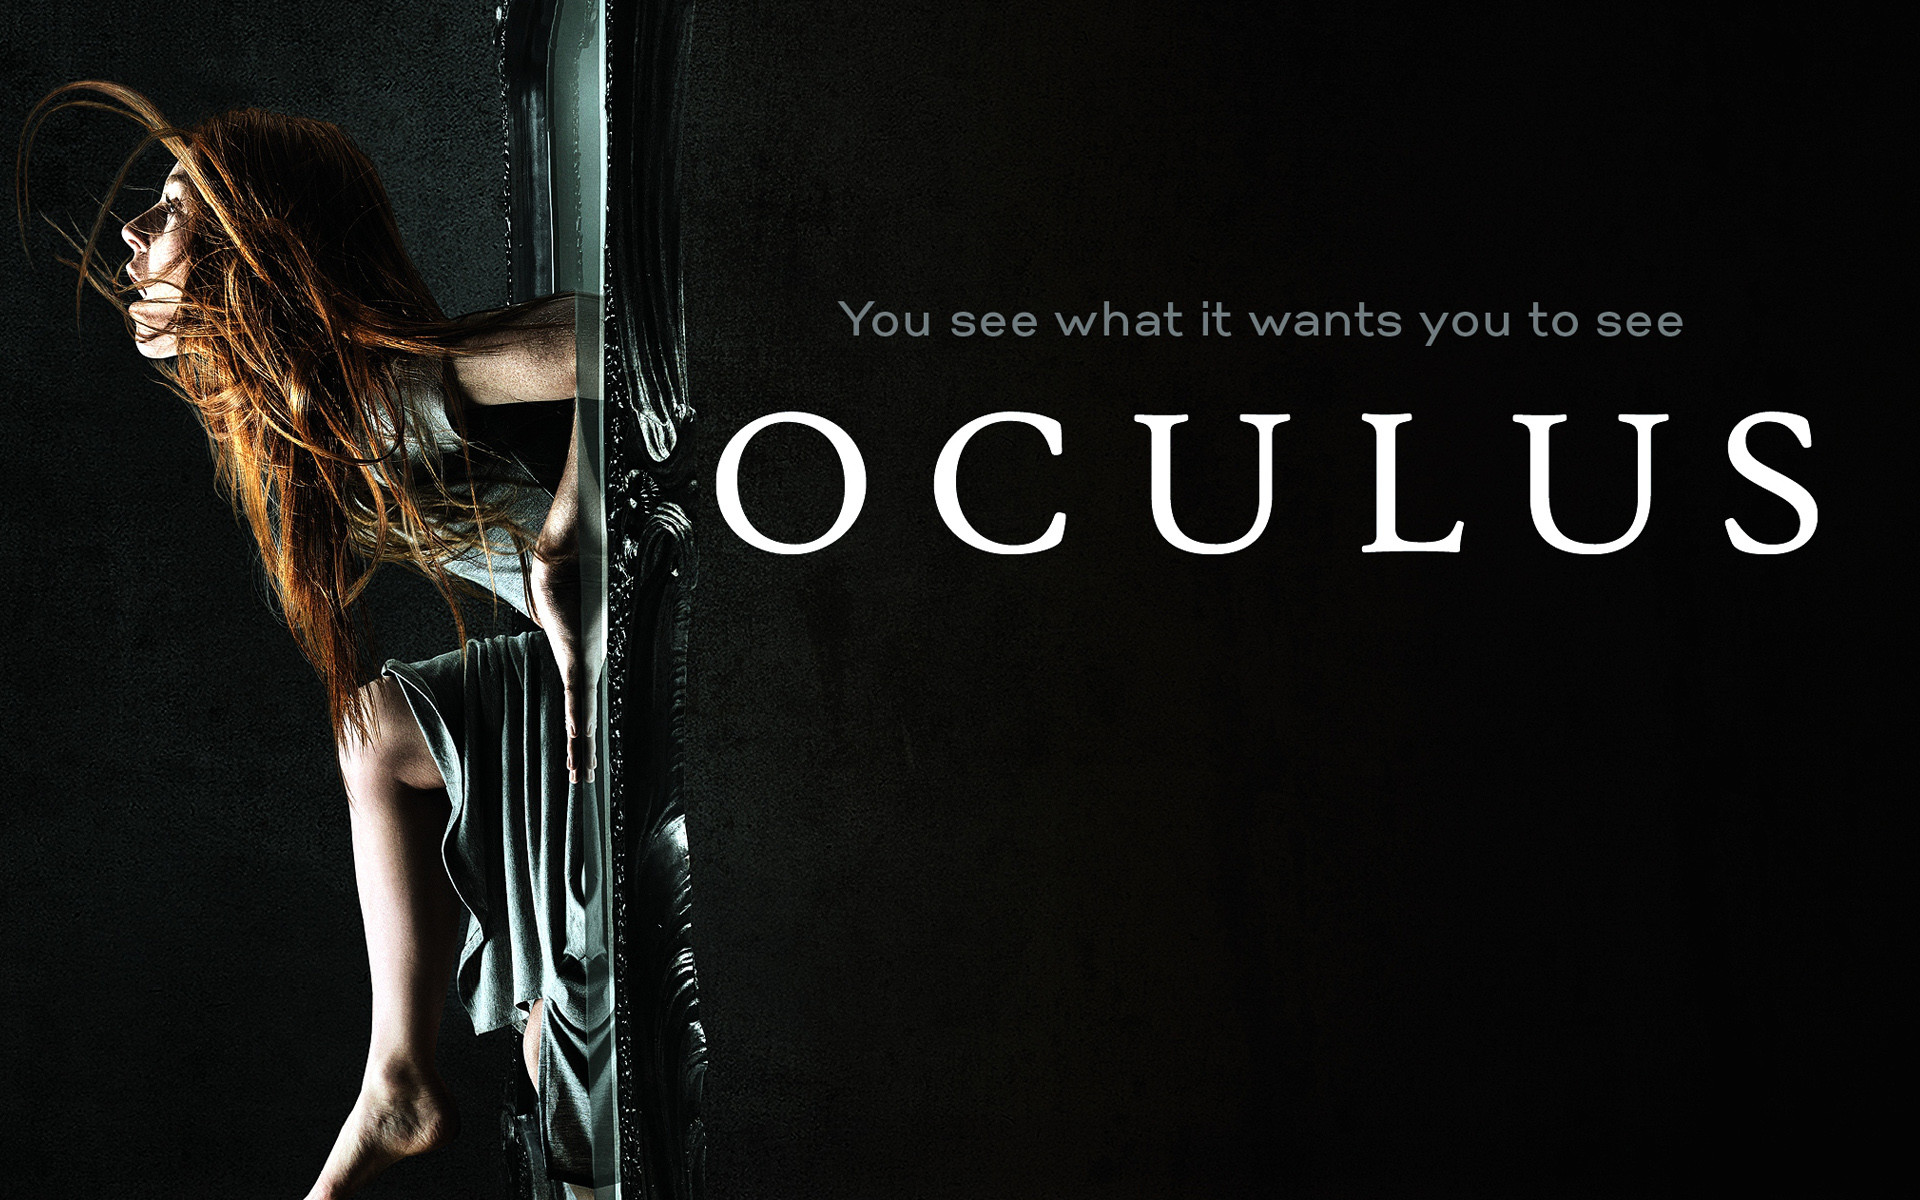 Oculus 2014 Horror Movie Wallpapers   HD Wallpapers